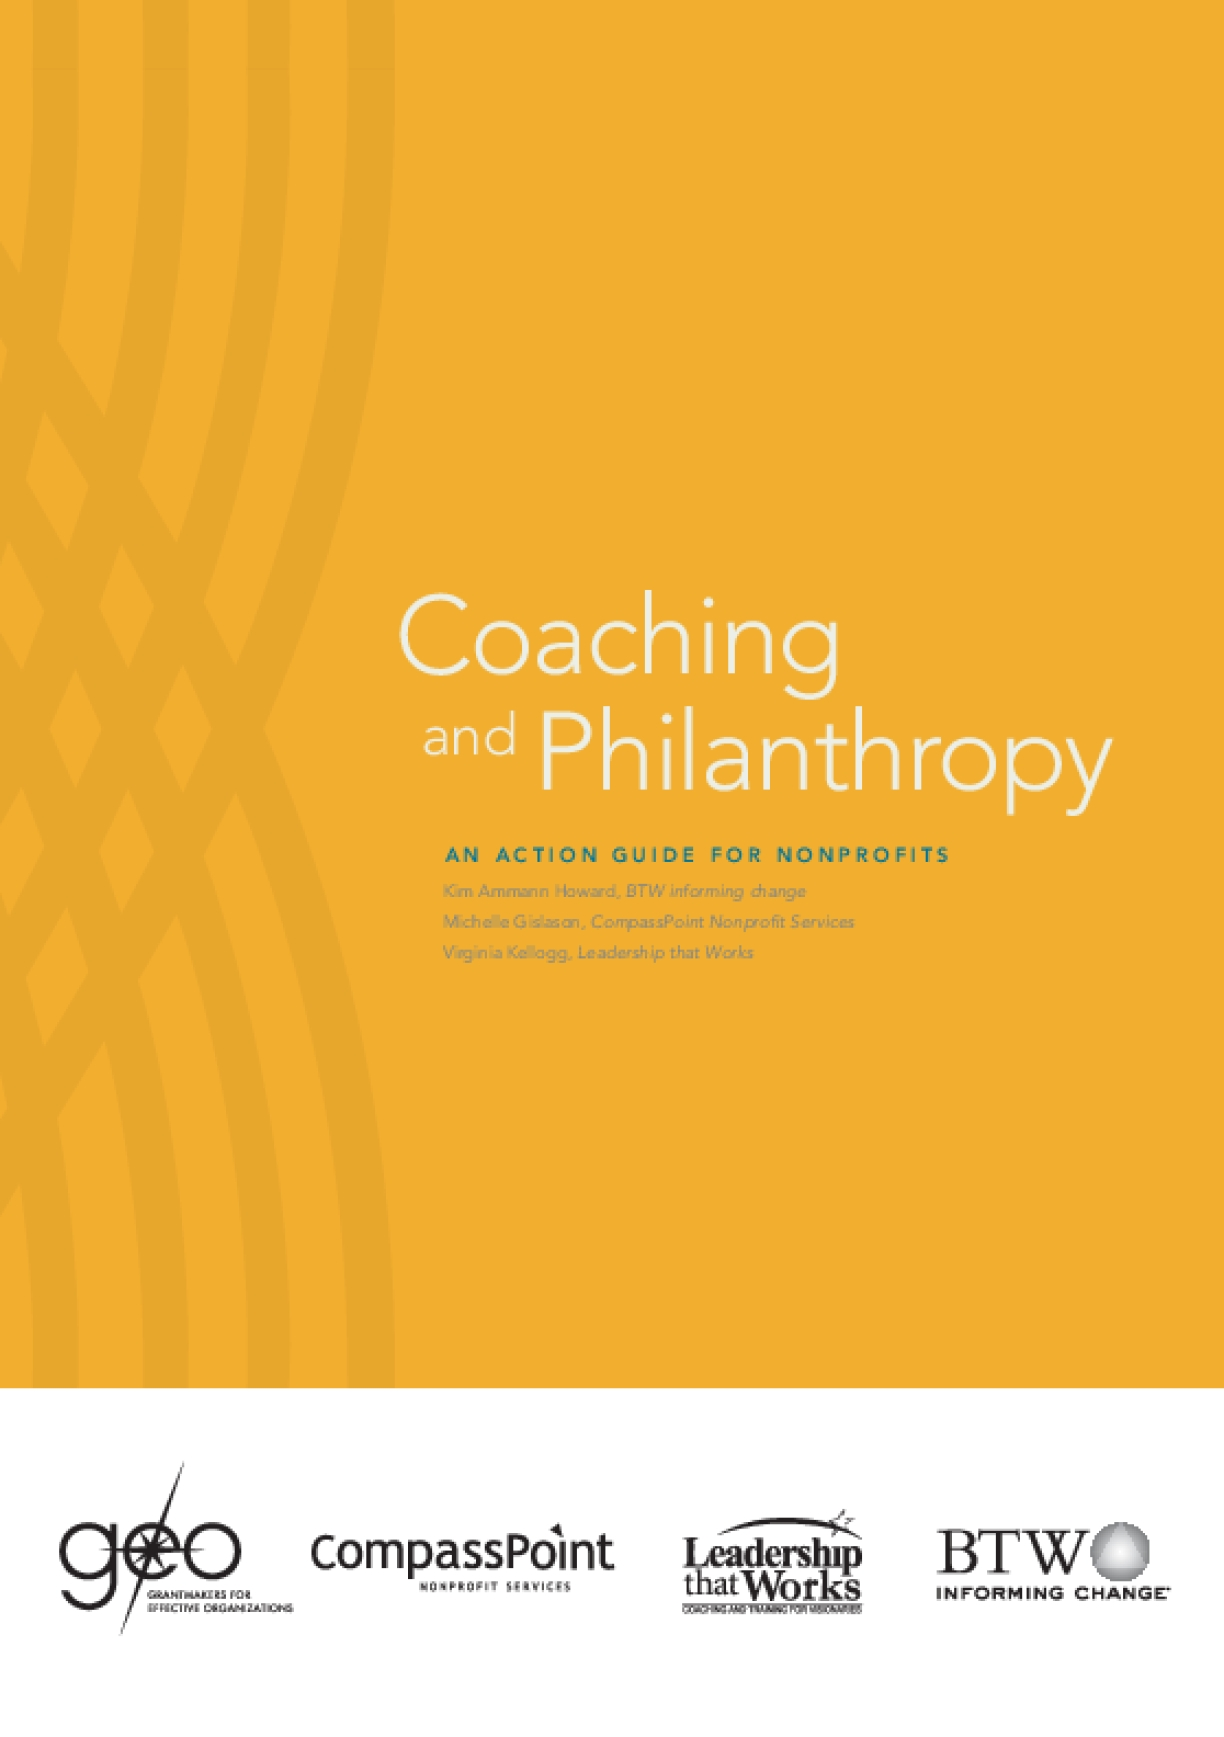 Coaching and Philanthropy: An Action Guide for Nonprofits